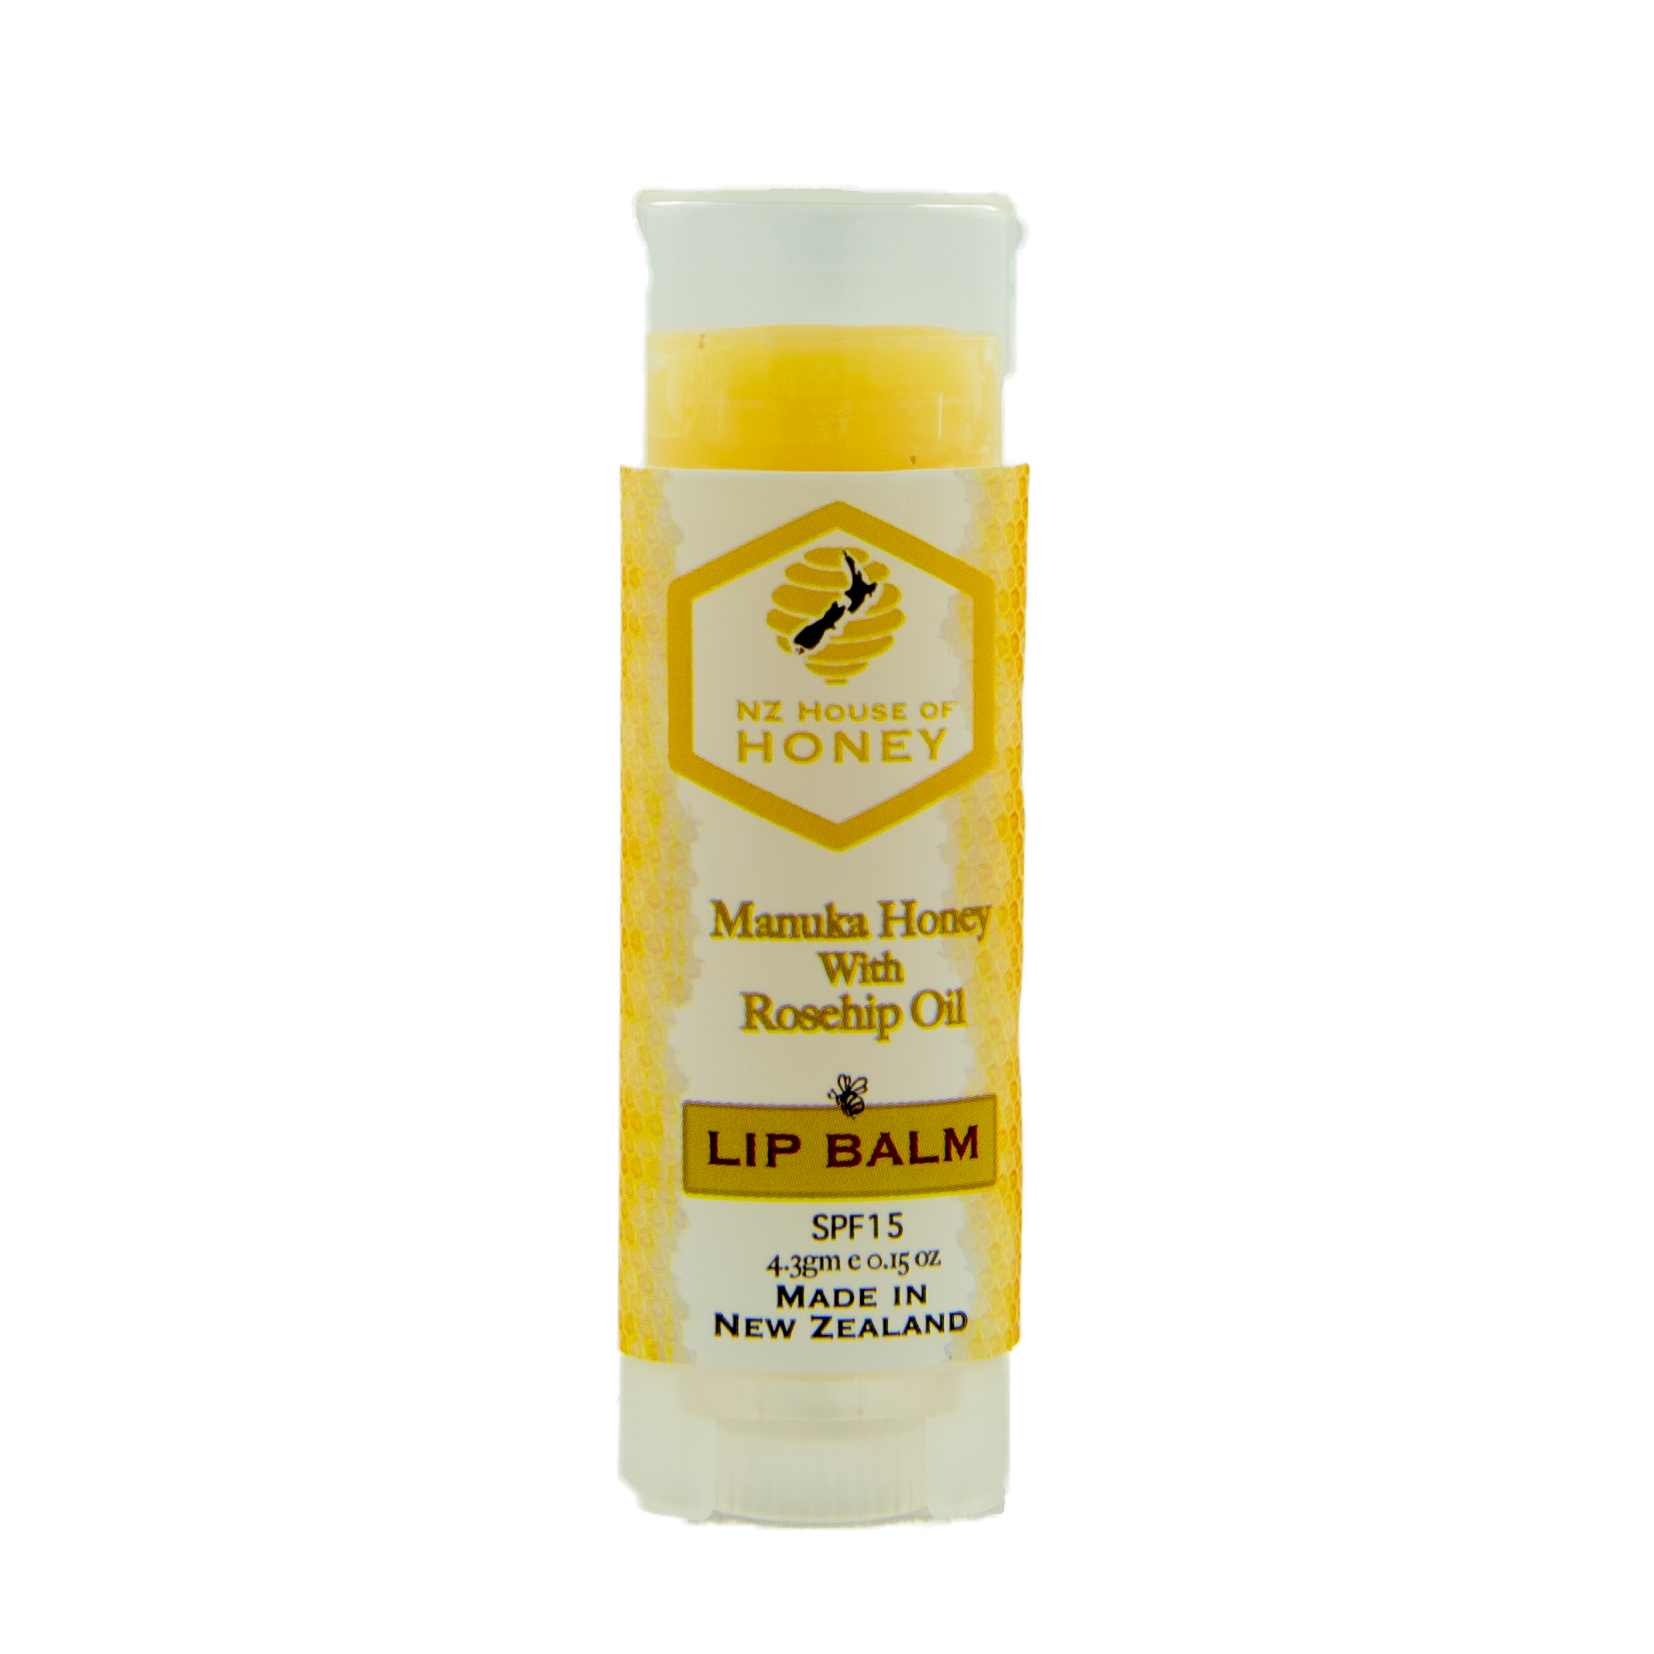 Lip Balm Stick with SPF15 - Manuka Honey of NZ